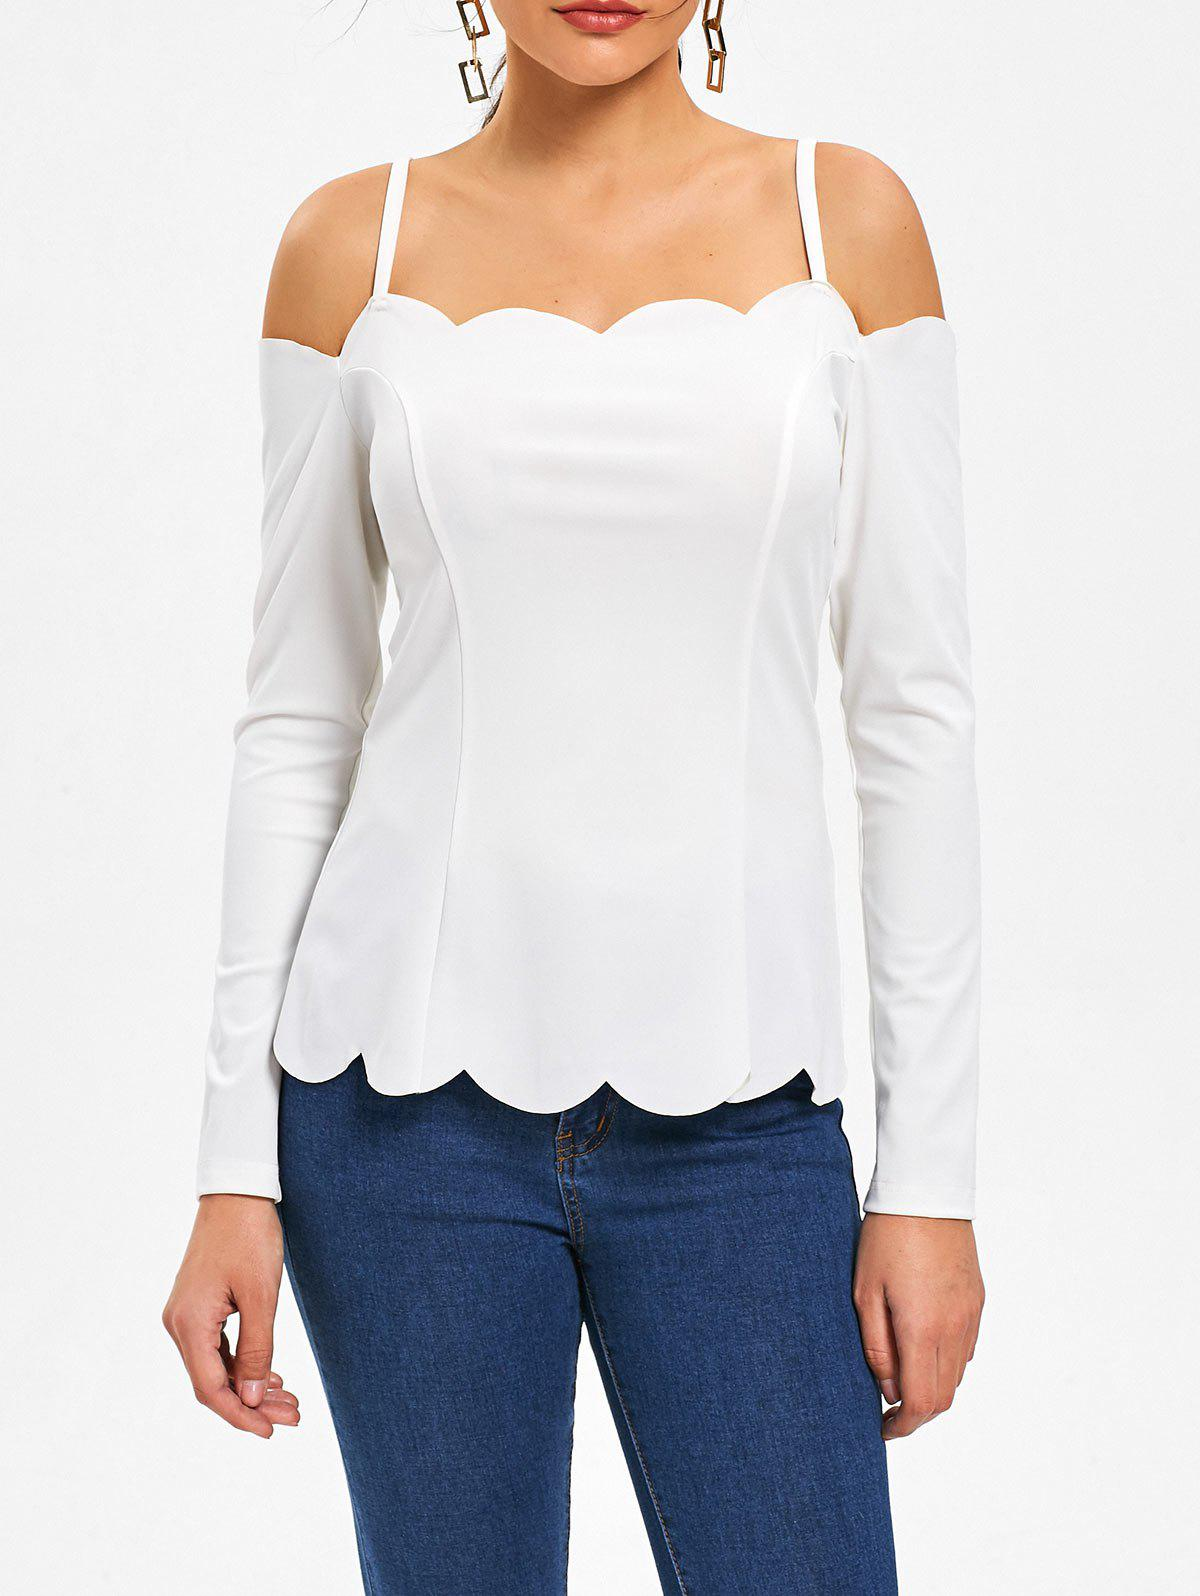 Scalloped Long Sleeve Spaghetti Strap TopWOMEN<br><br>Size: 2XL; Color: WHITE; Material: Polyester,Spandex; Shirt Length: Regular; Sleeve Length: Full; Collar: Spaghetti Strap; Style: Fashion; Embellishment: Scalloped; Pattern Type: Solid Color; Season: Fall,Spring; Weight: 0.2080kg; Package Contents: 1 x Top;